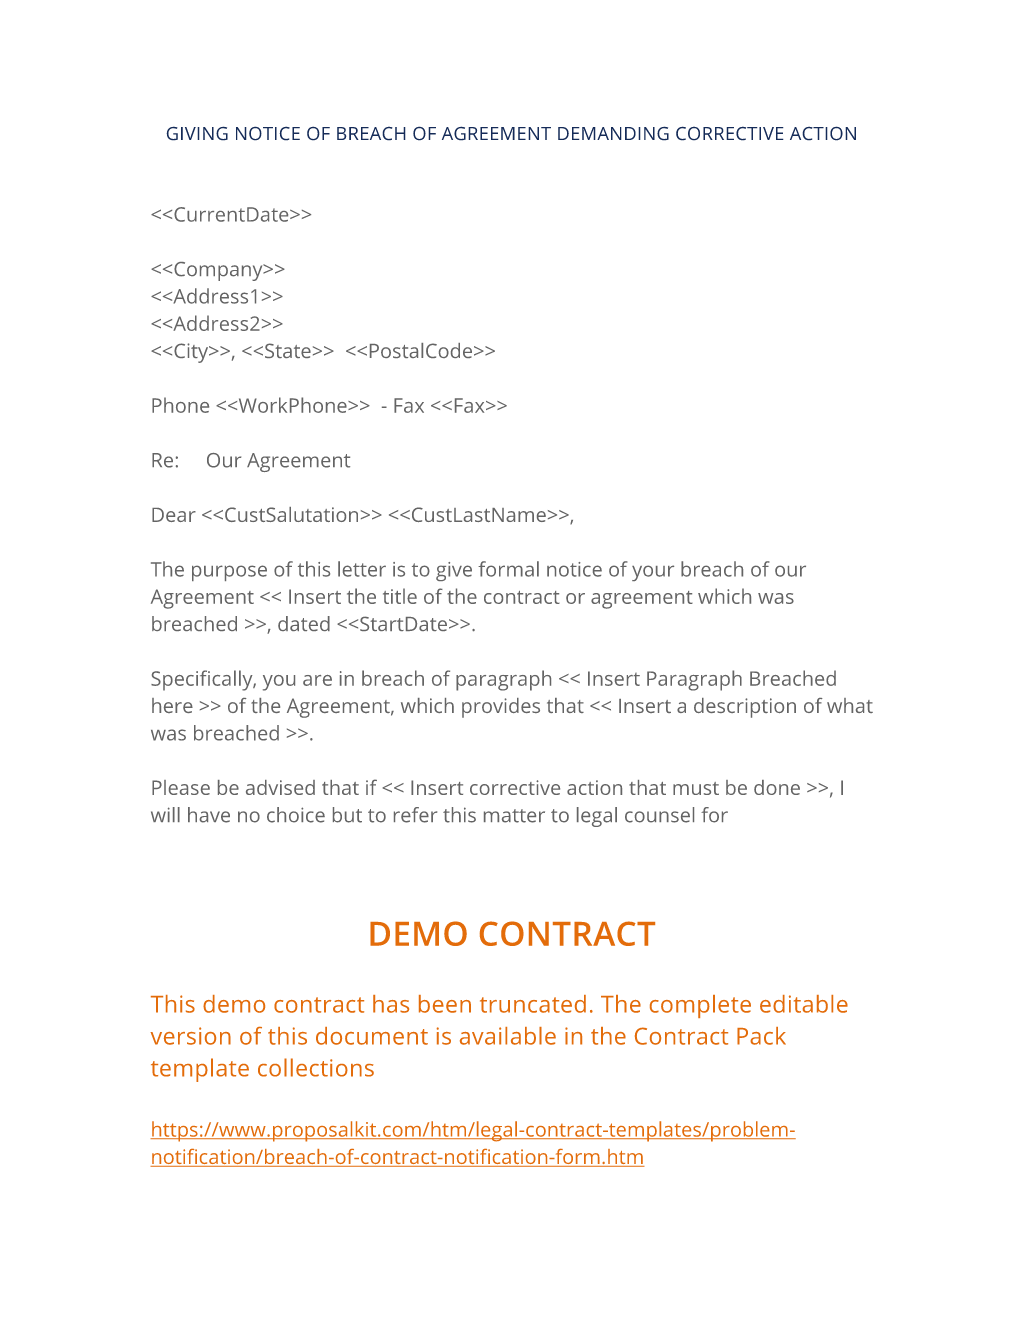 Breach of Contract Notification Form